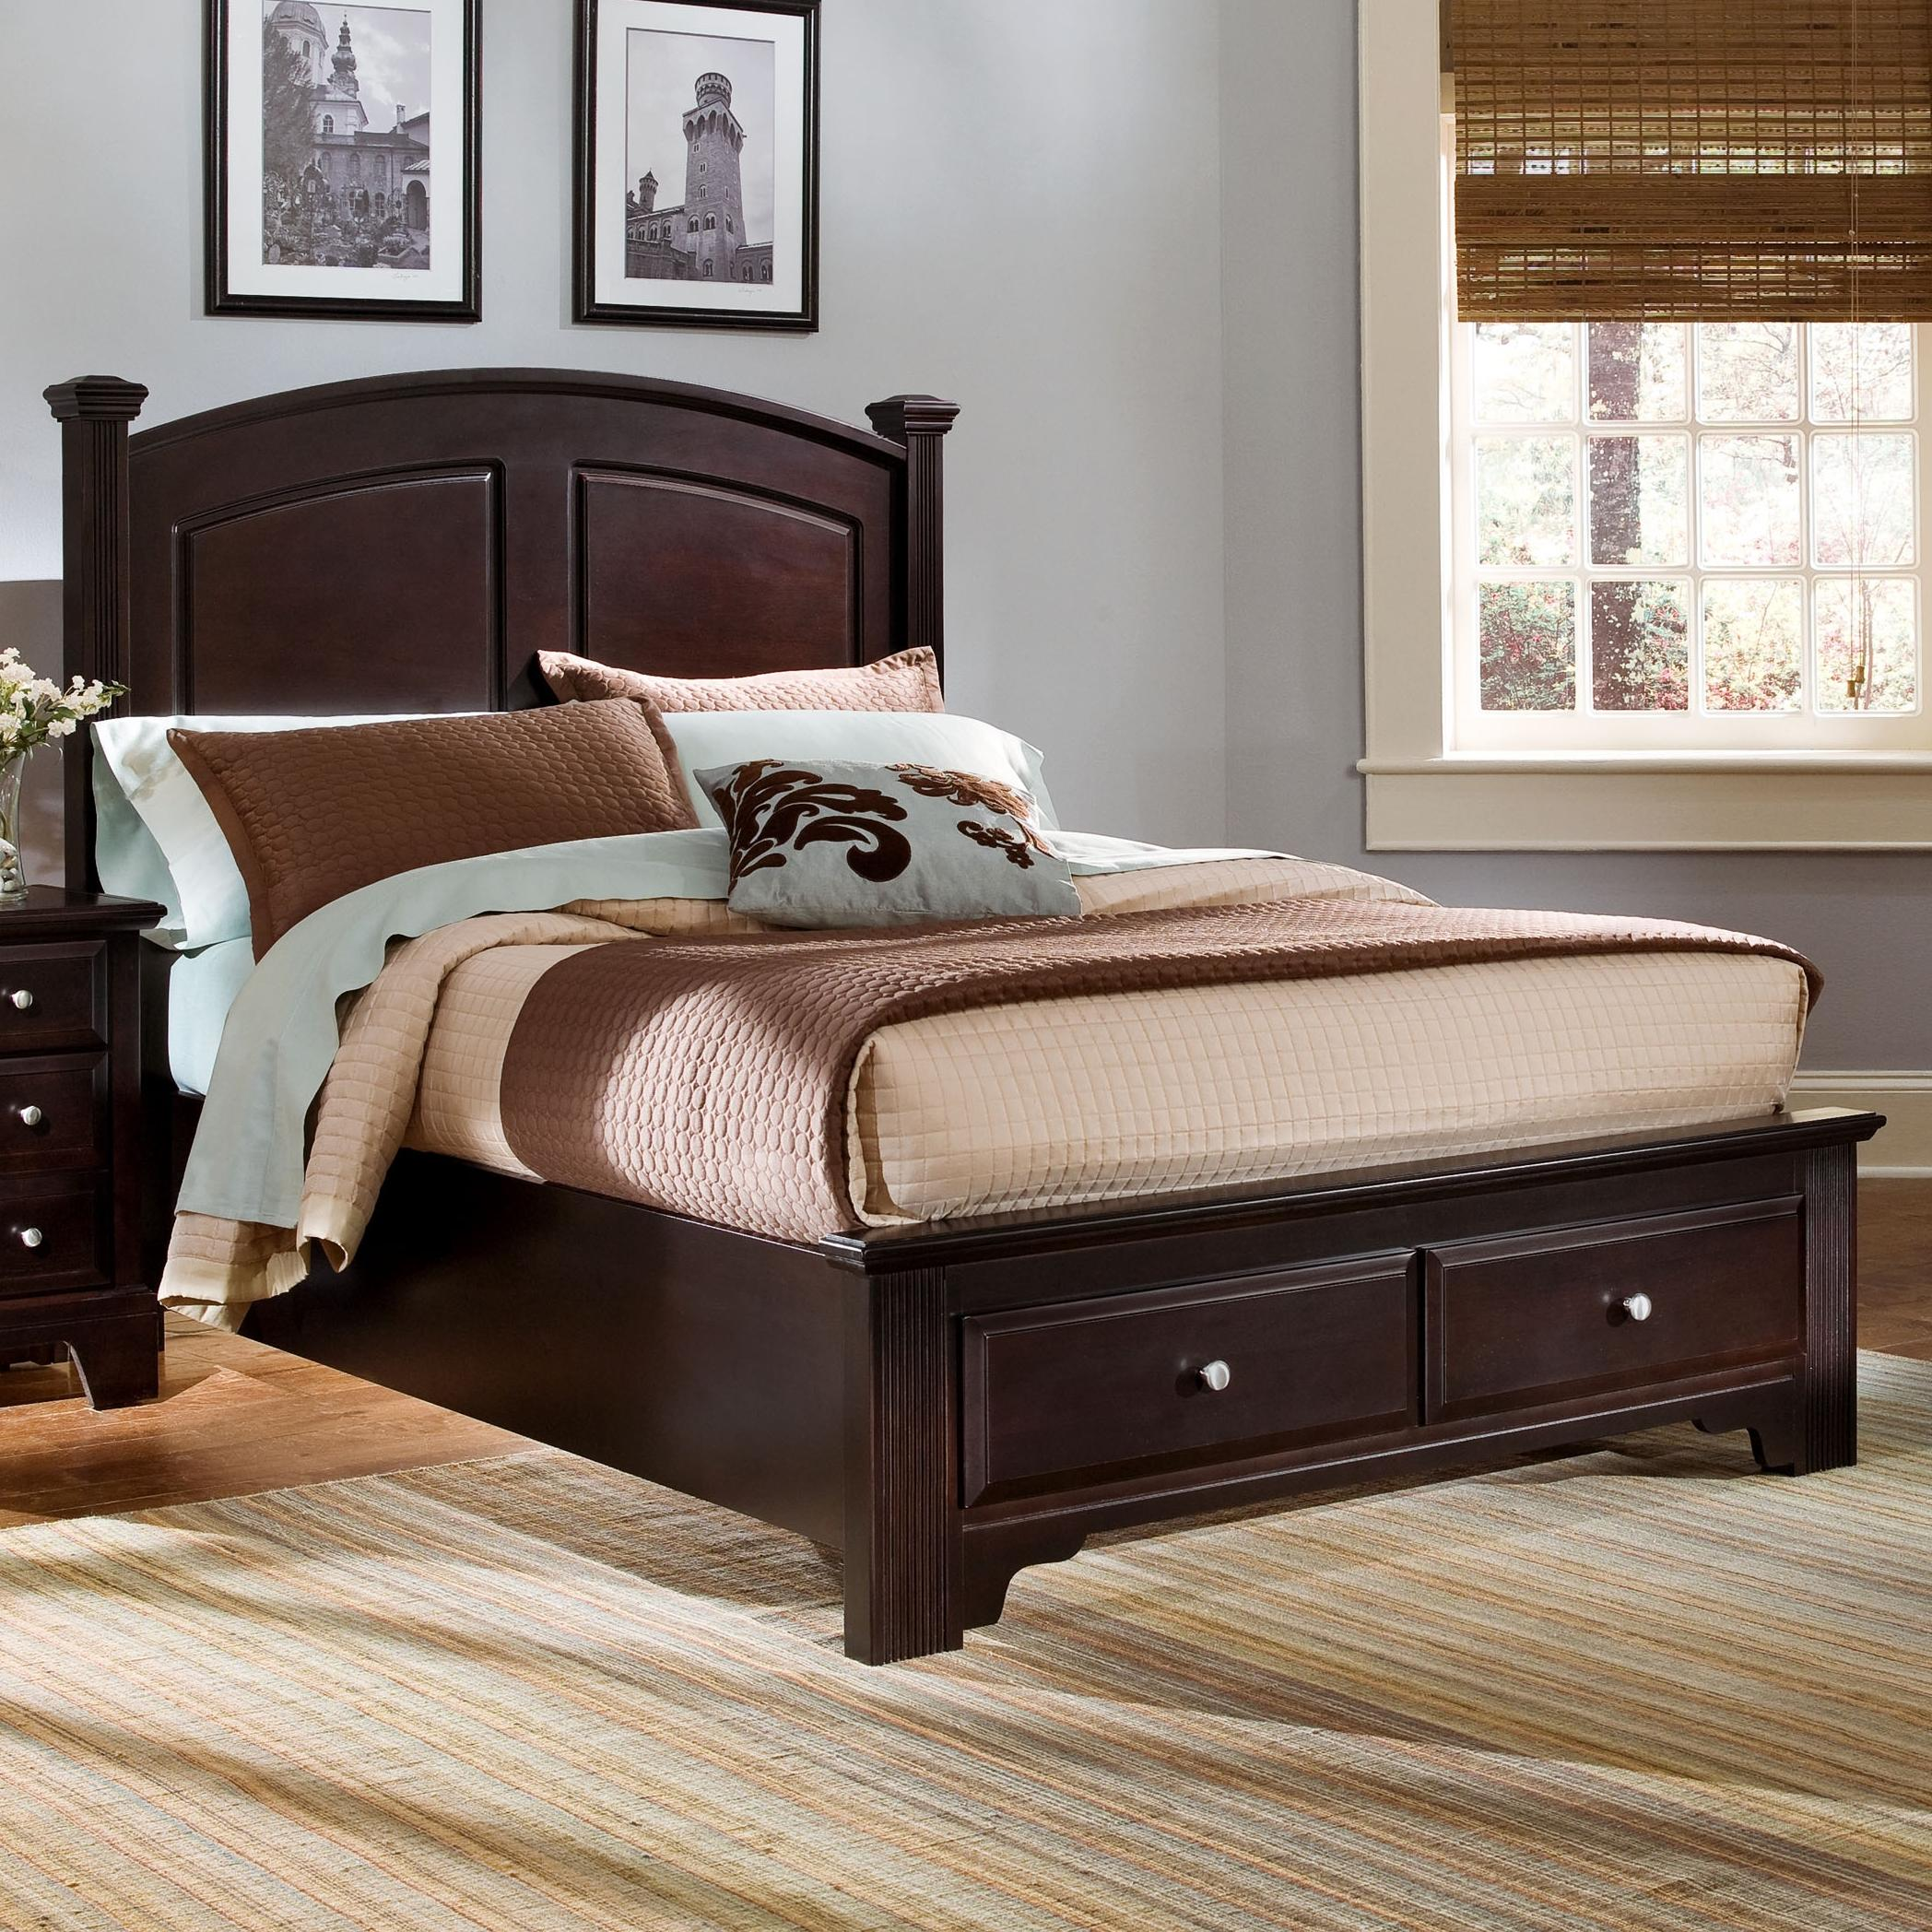 Hamilton/Franklin Queen Panel Storage Bed by Vaughan Bassett at Westrich Furniture & Appliances